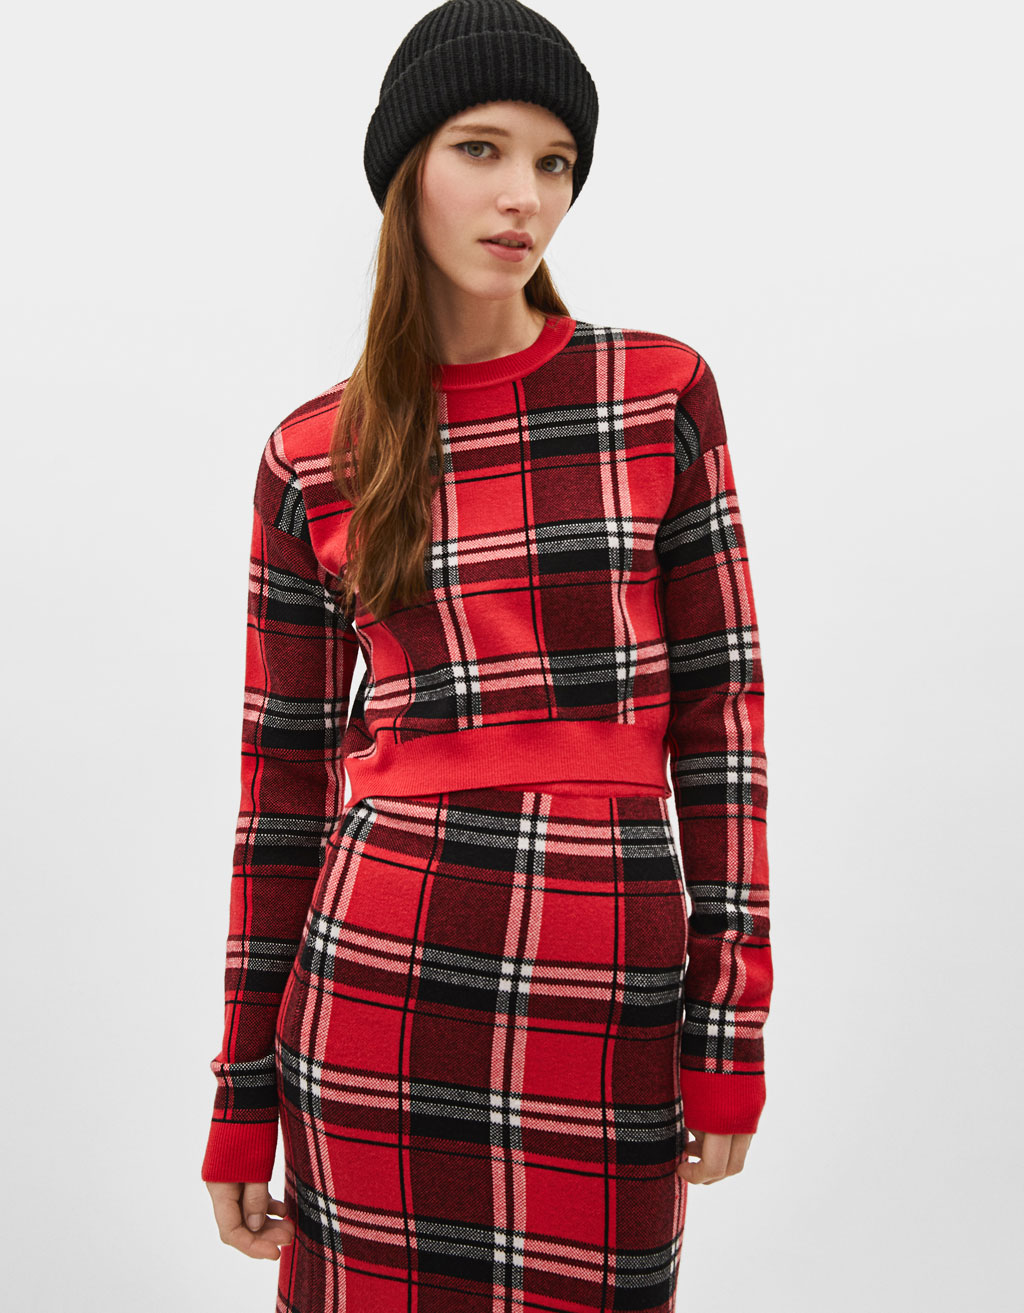 Cropped check print sweater